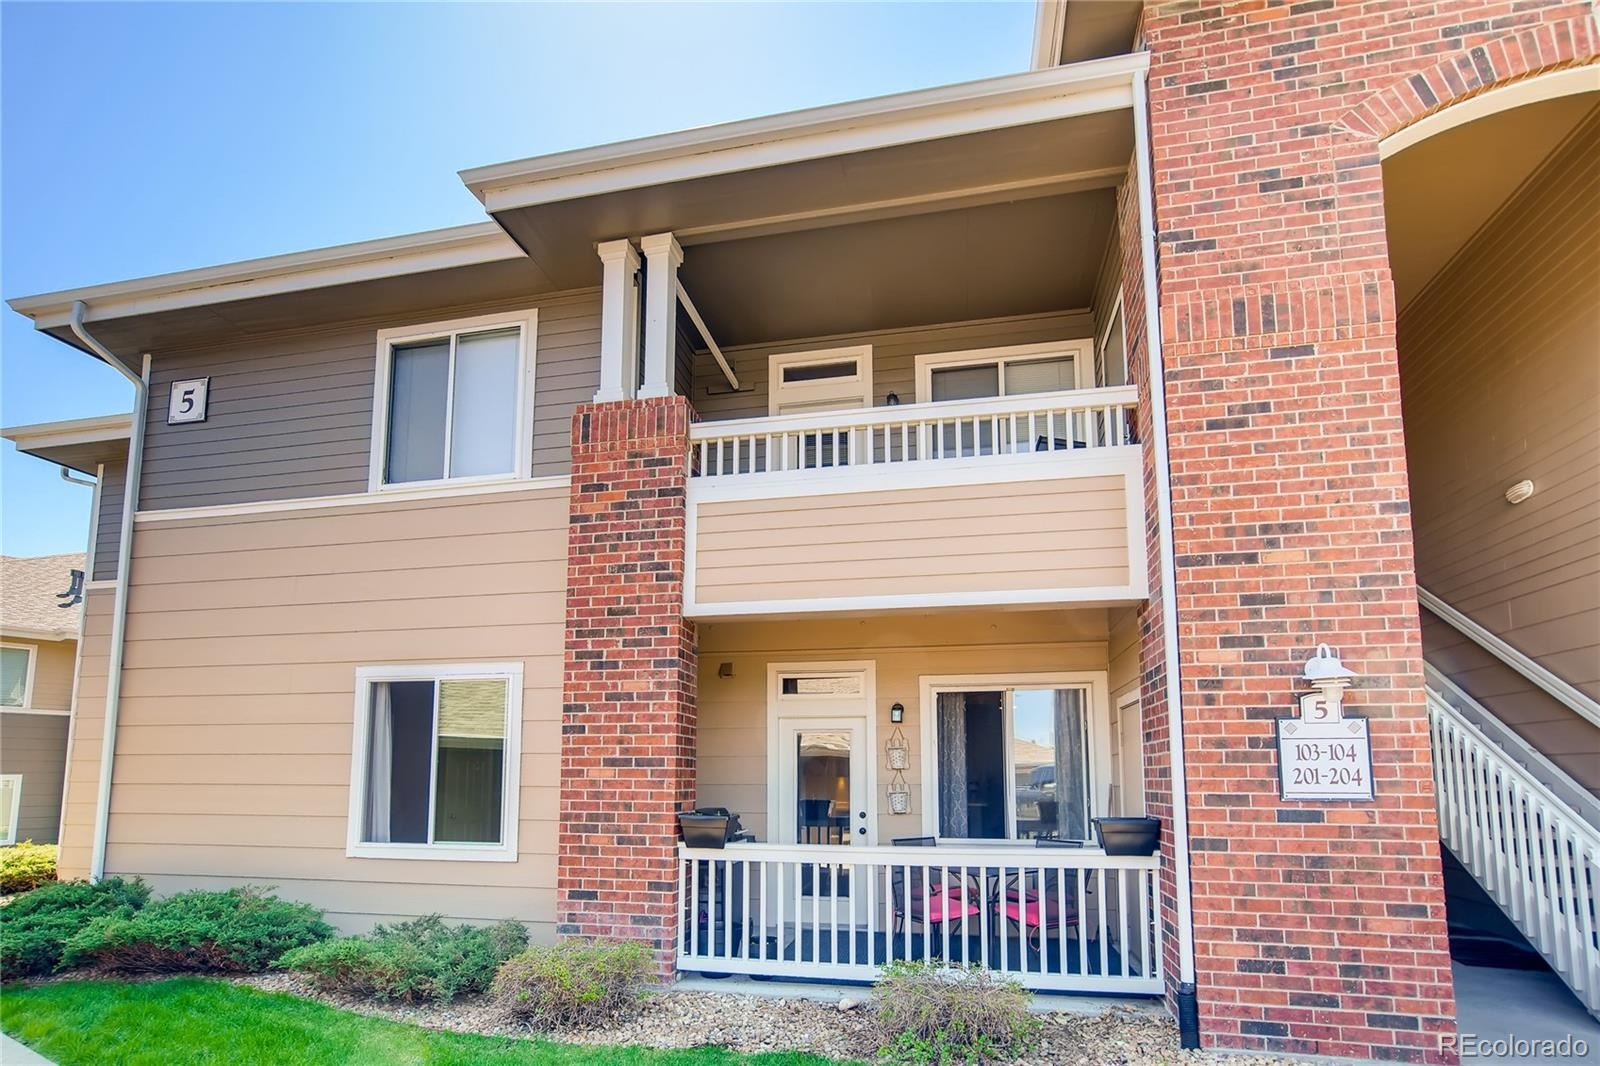 8481 W Union Avenue  5-104 #5-104, Denver, CO 80123 - #: 8425109